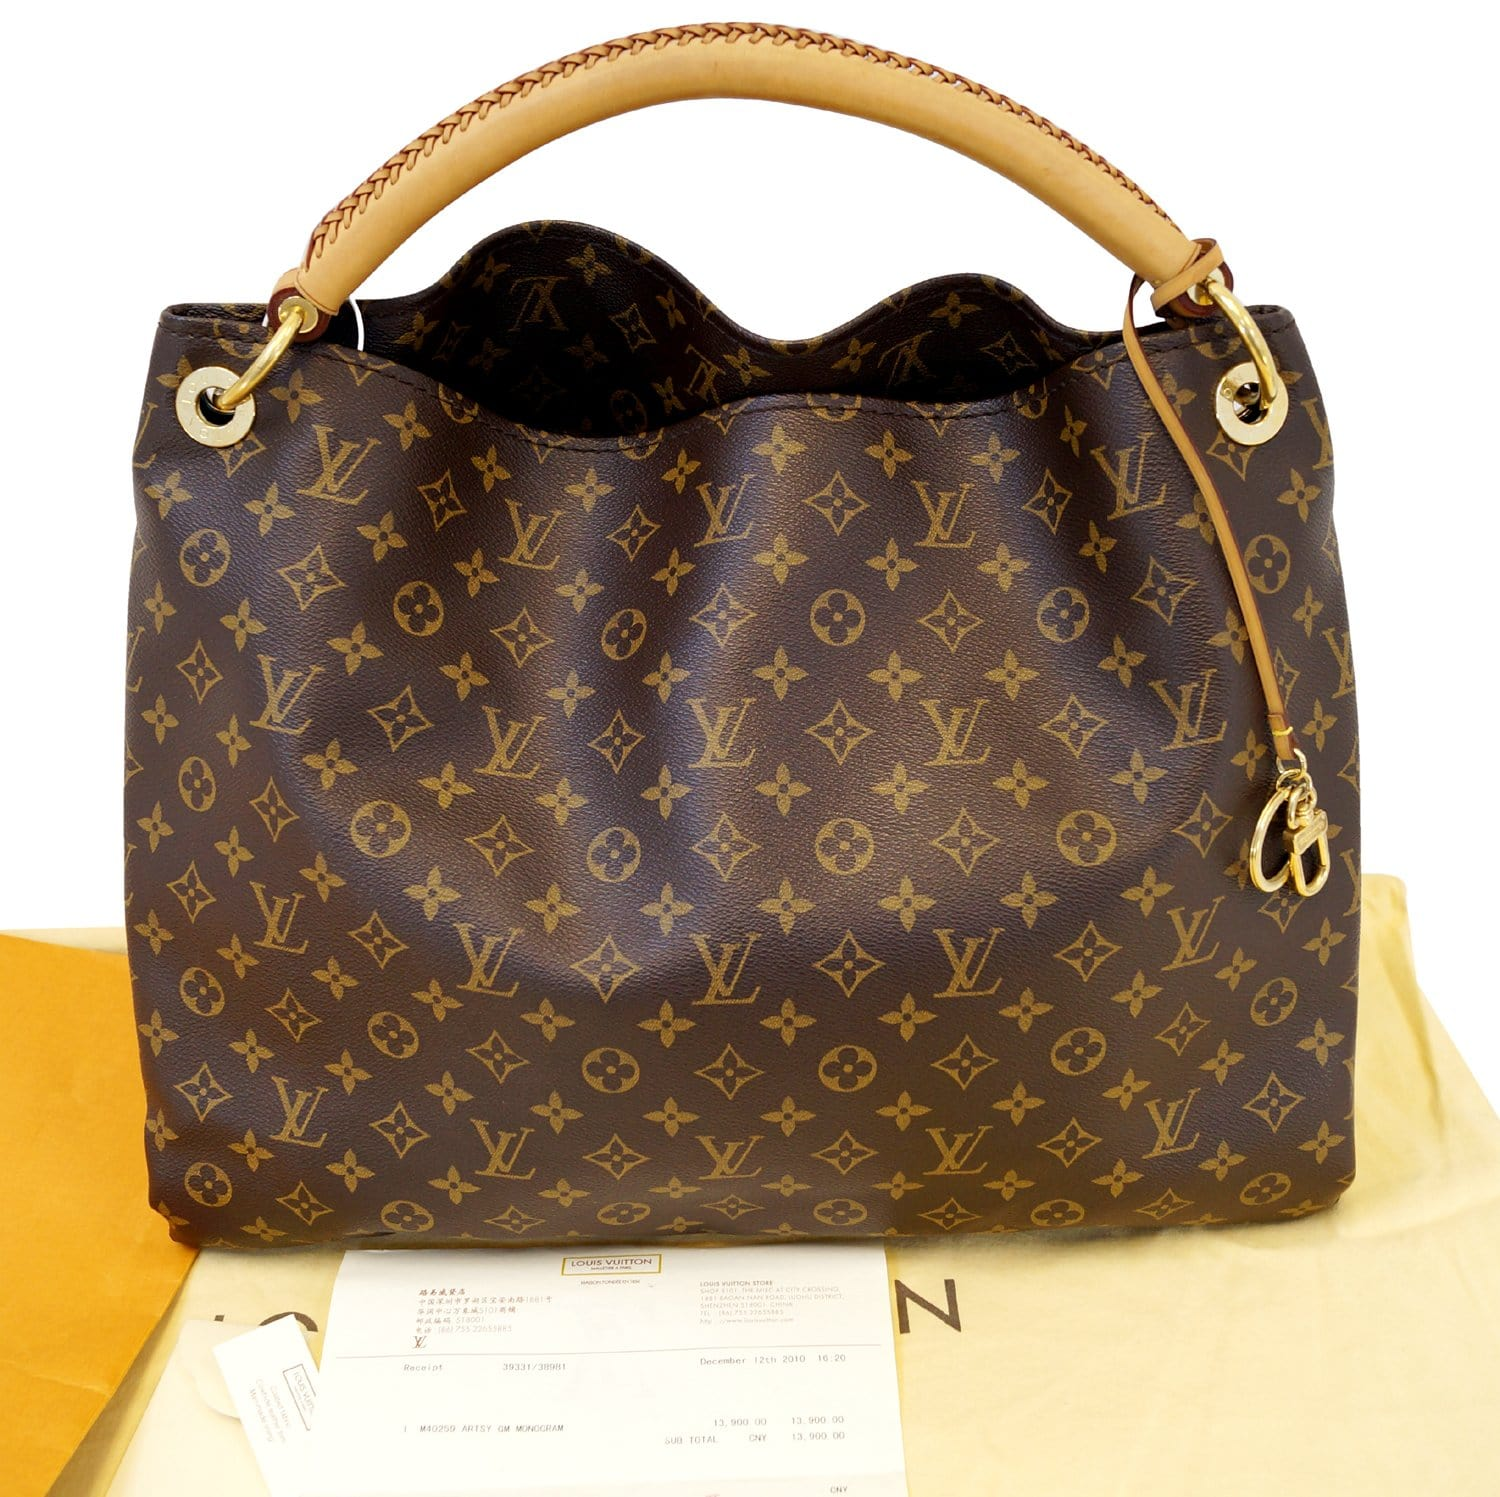 210547c44b8f Authentic LOUIS VUITTON Monogram Artsy GM Tote Hobo Handbag Limited E3